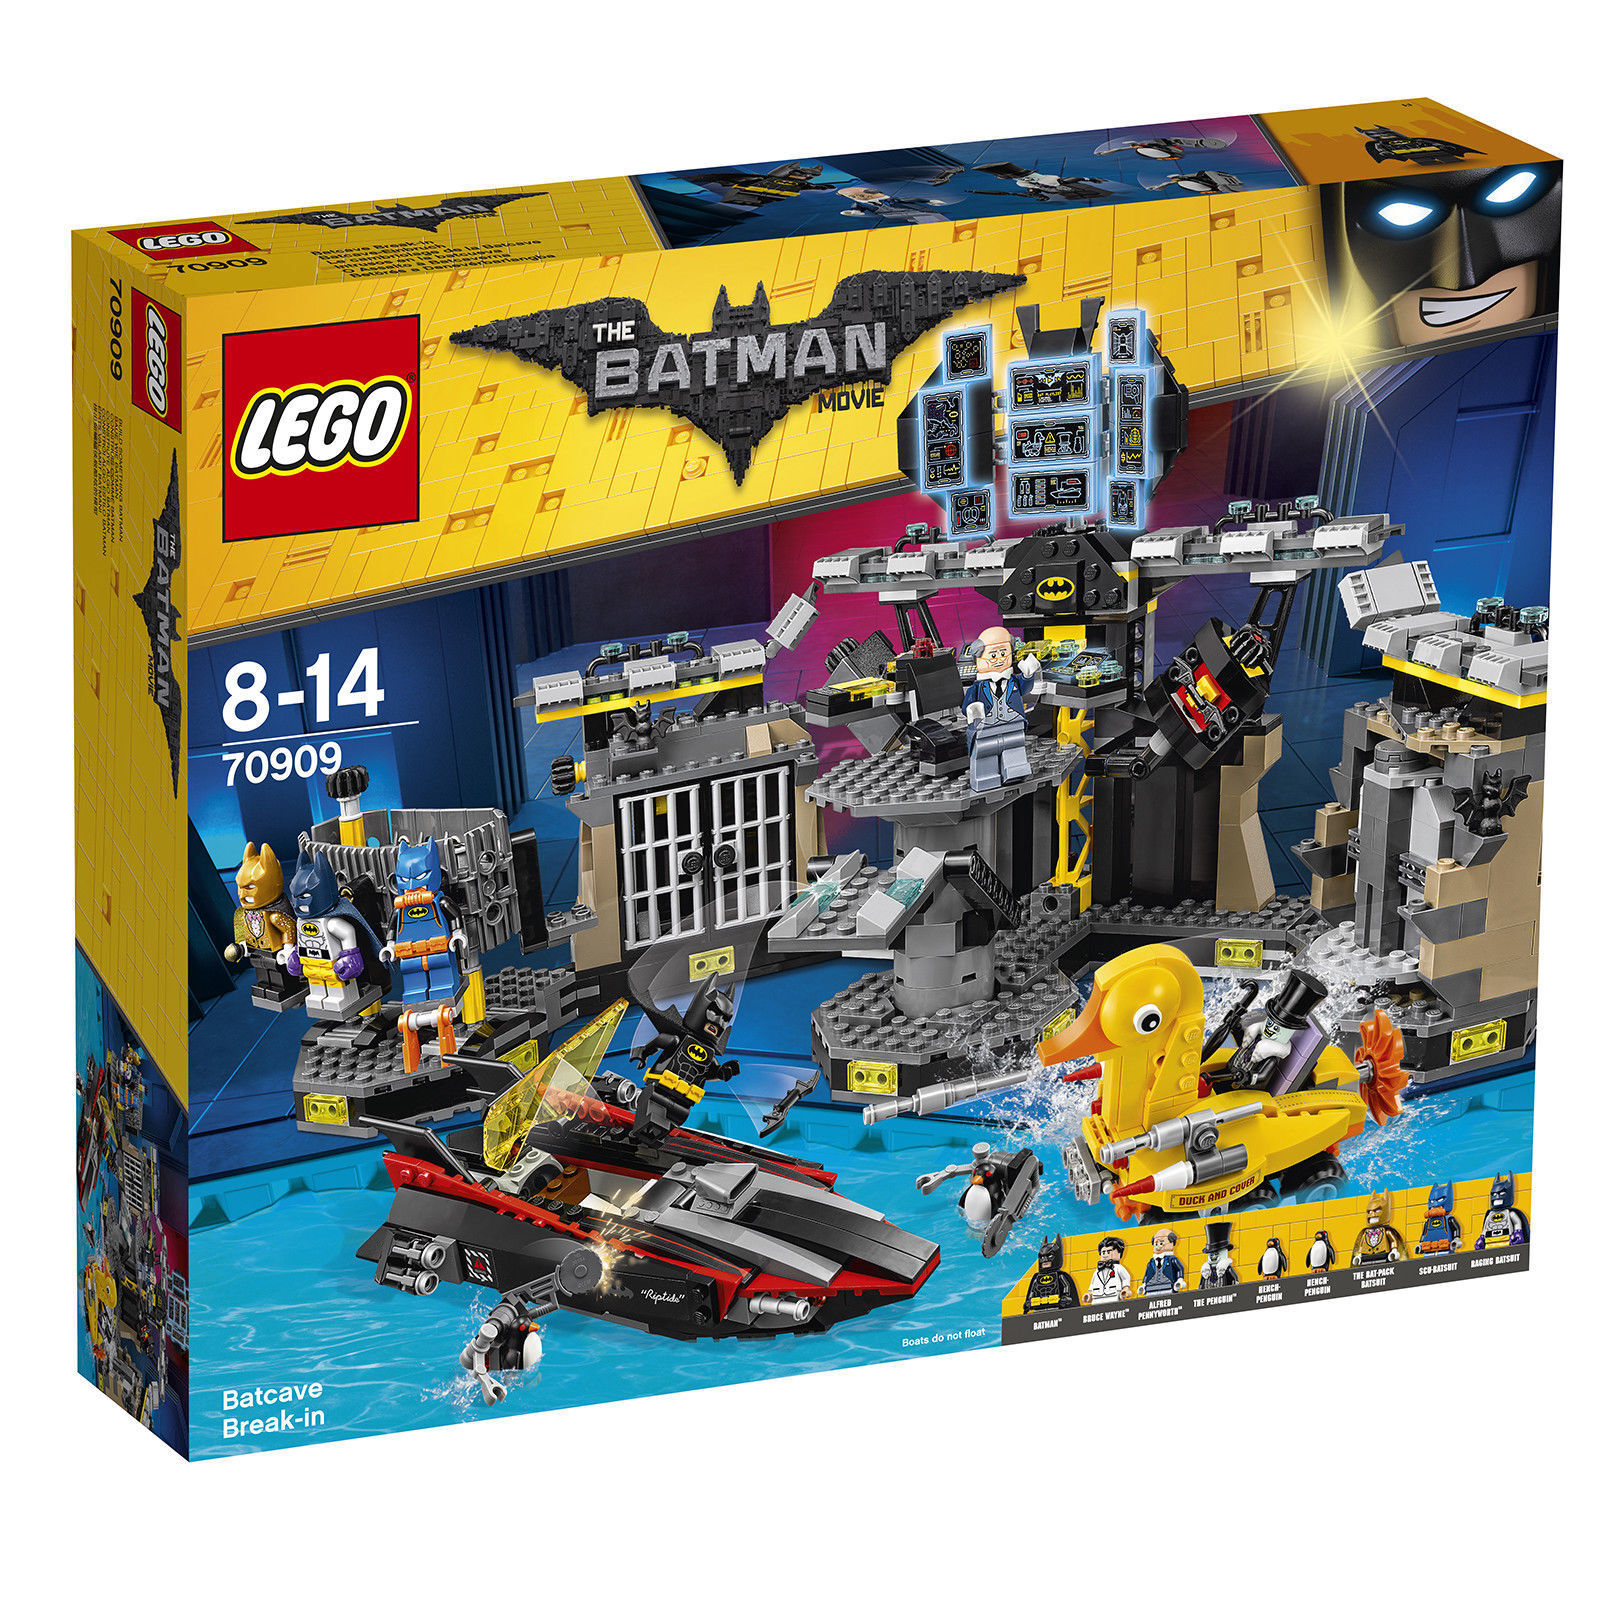 LEGO  70909 Batcave Break-in - BATMAN MOVIE - BRAND NEW RETIRED